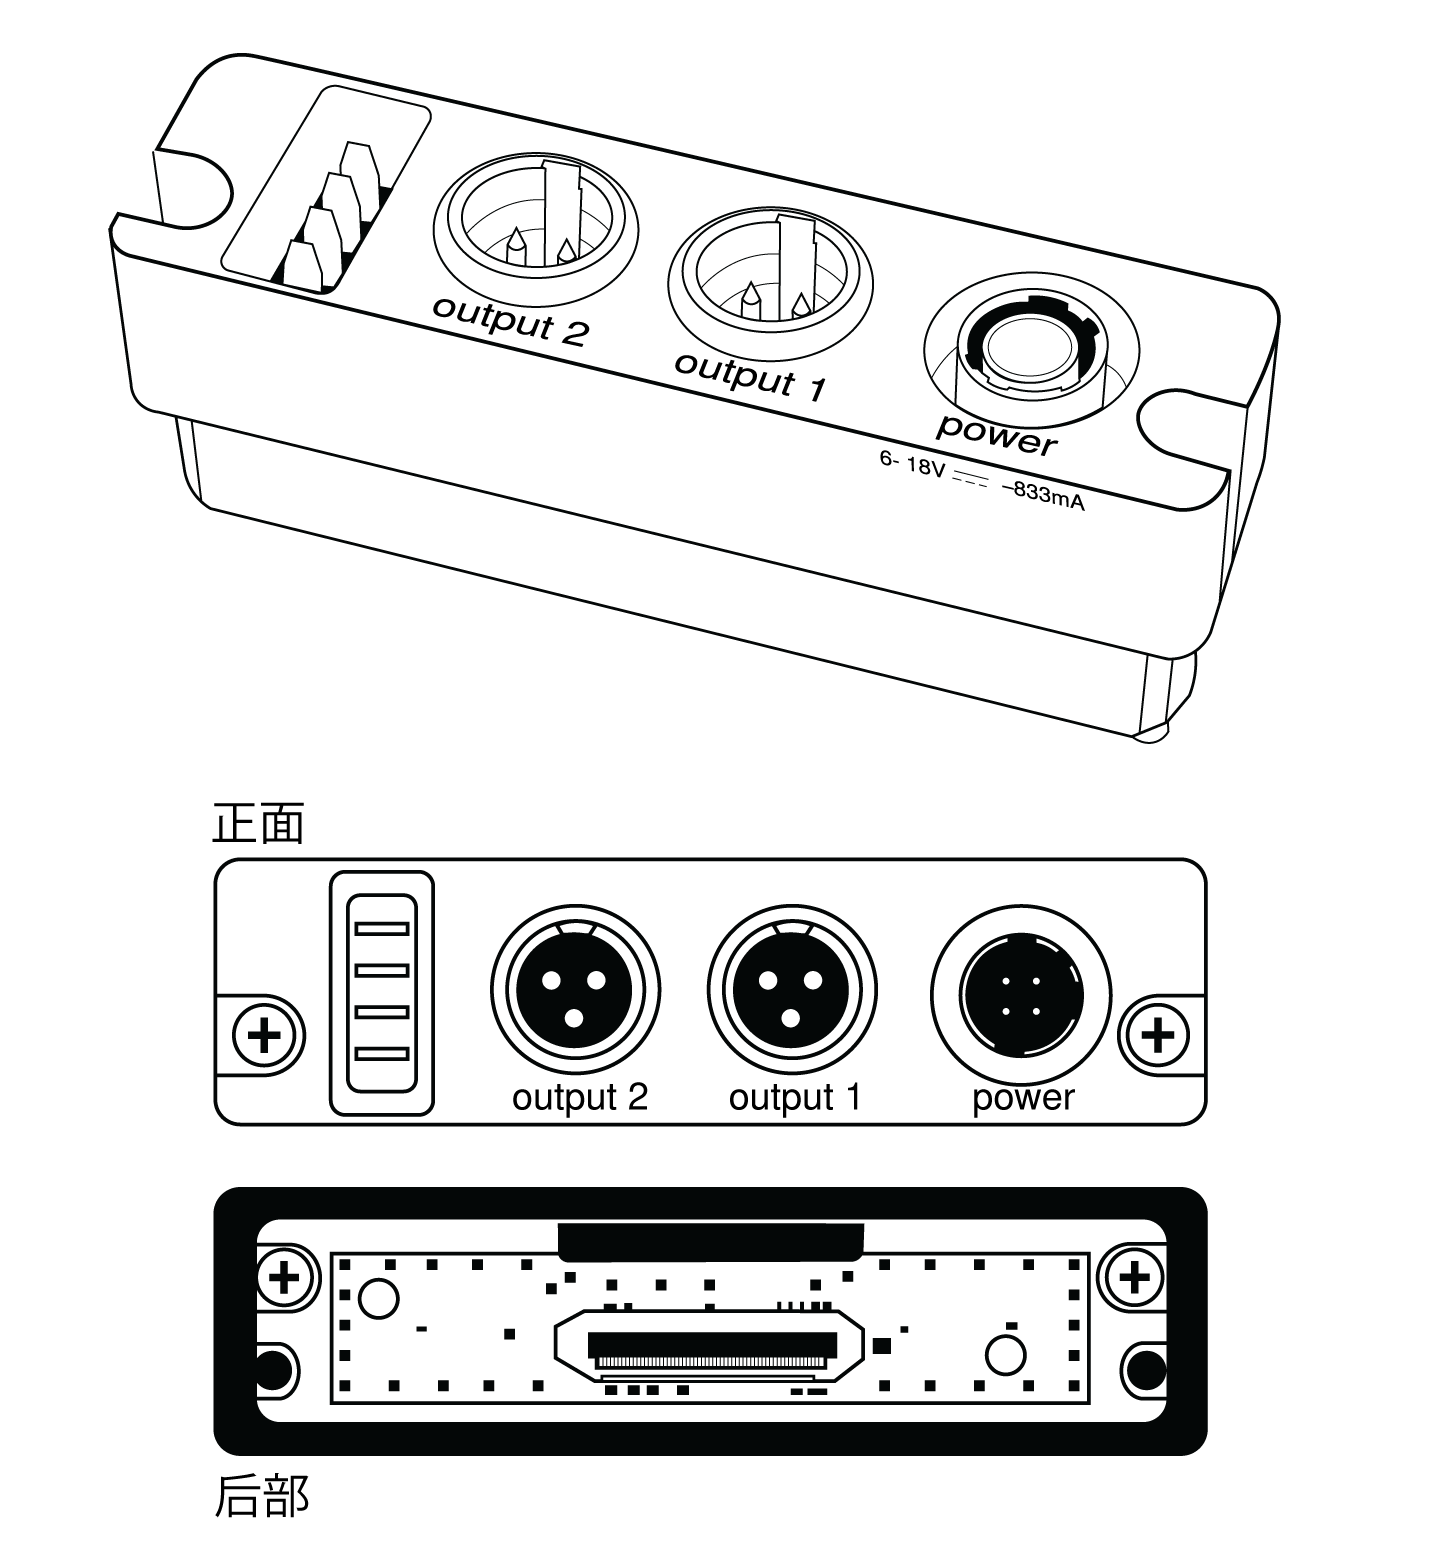 The TA3 backplate, showing the oower and outputs on the front and the connector on the rear